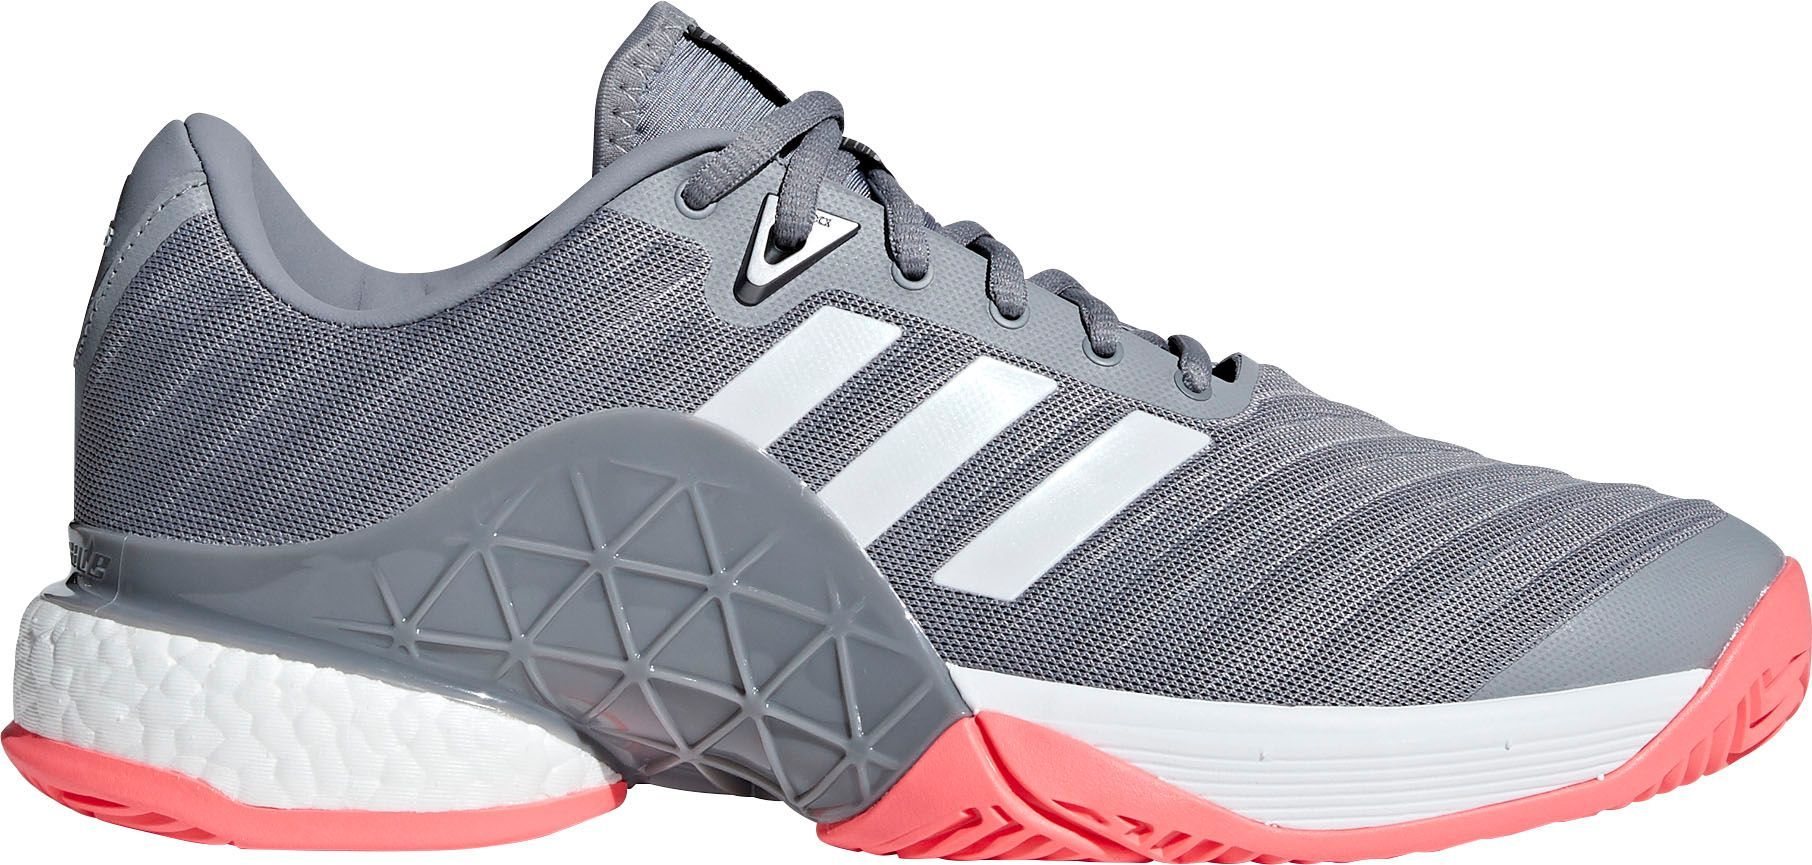 adidas Men's Barricade 2018 Boost Tennis Shoes in 2020